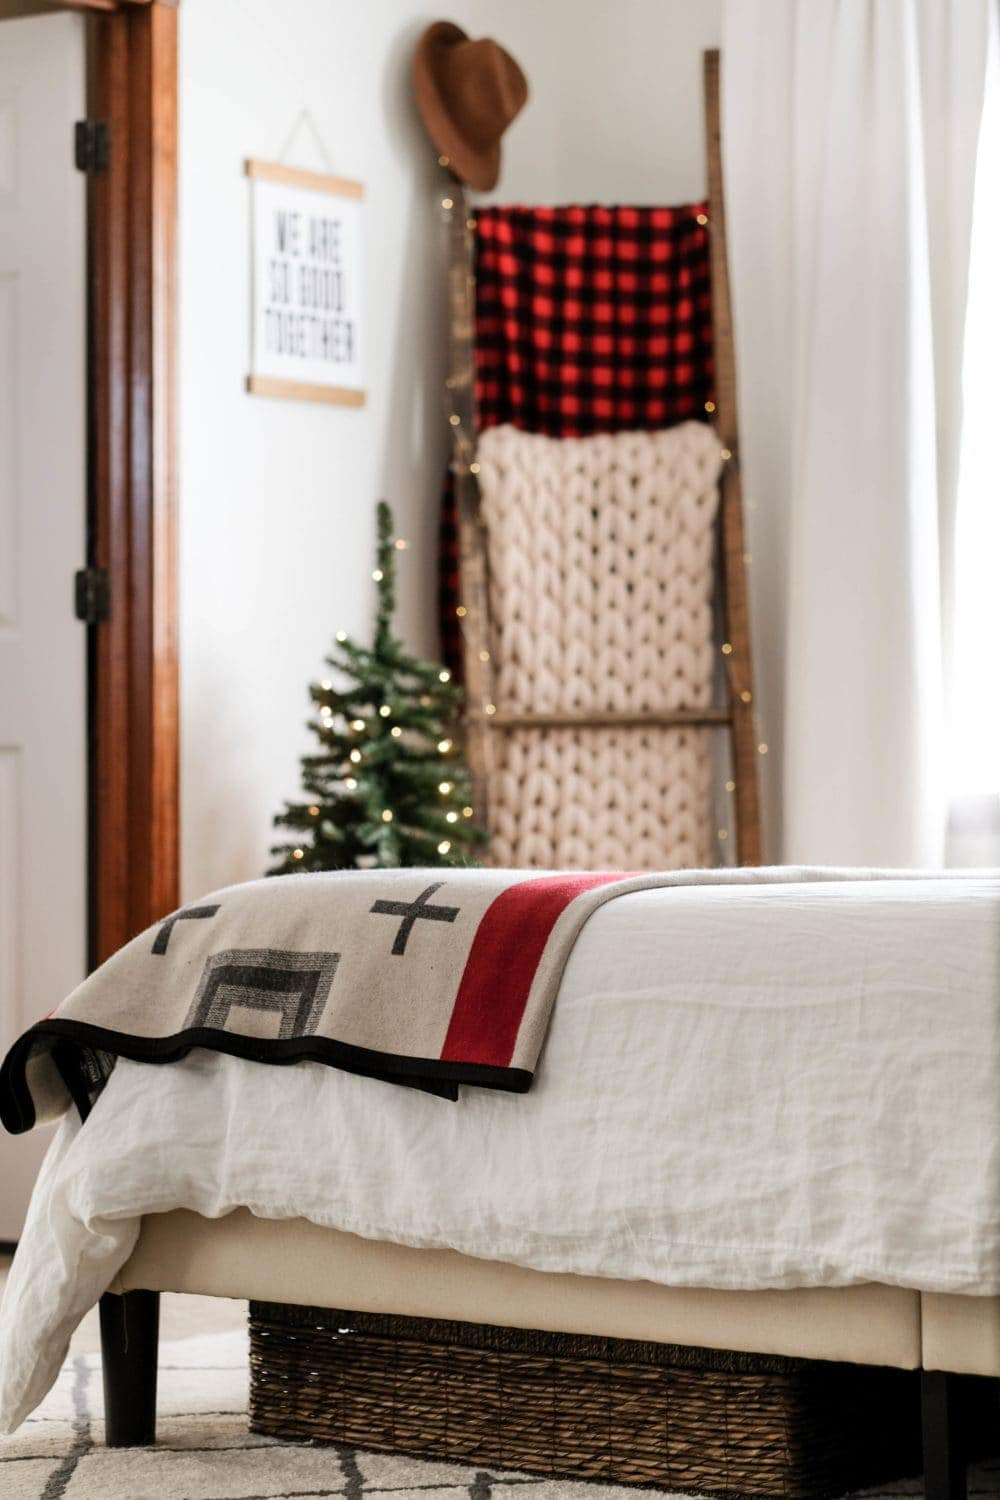 Christmas bedroom decor ideas with a blanket ladder and mini christmas tree